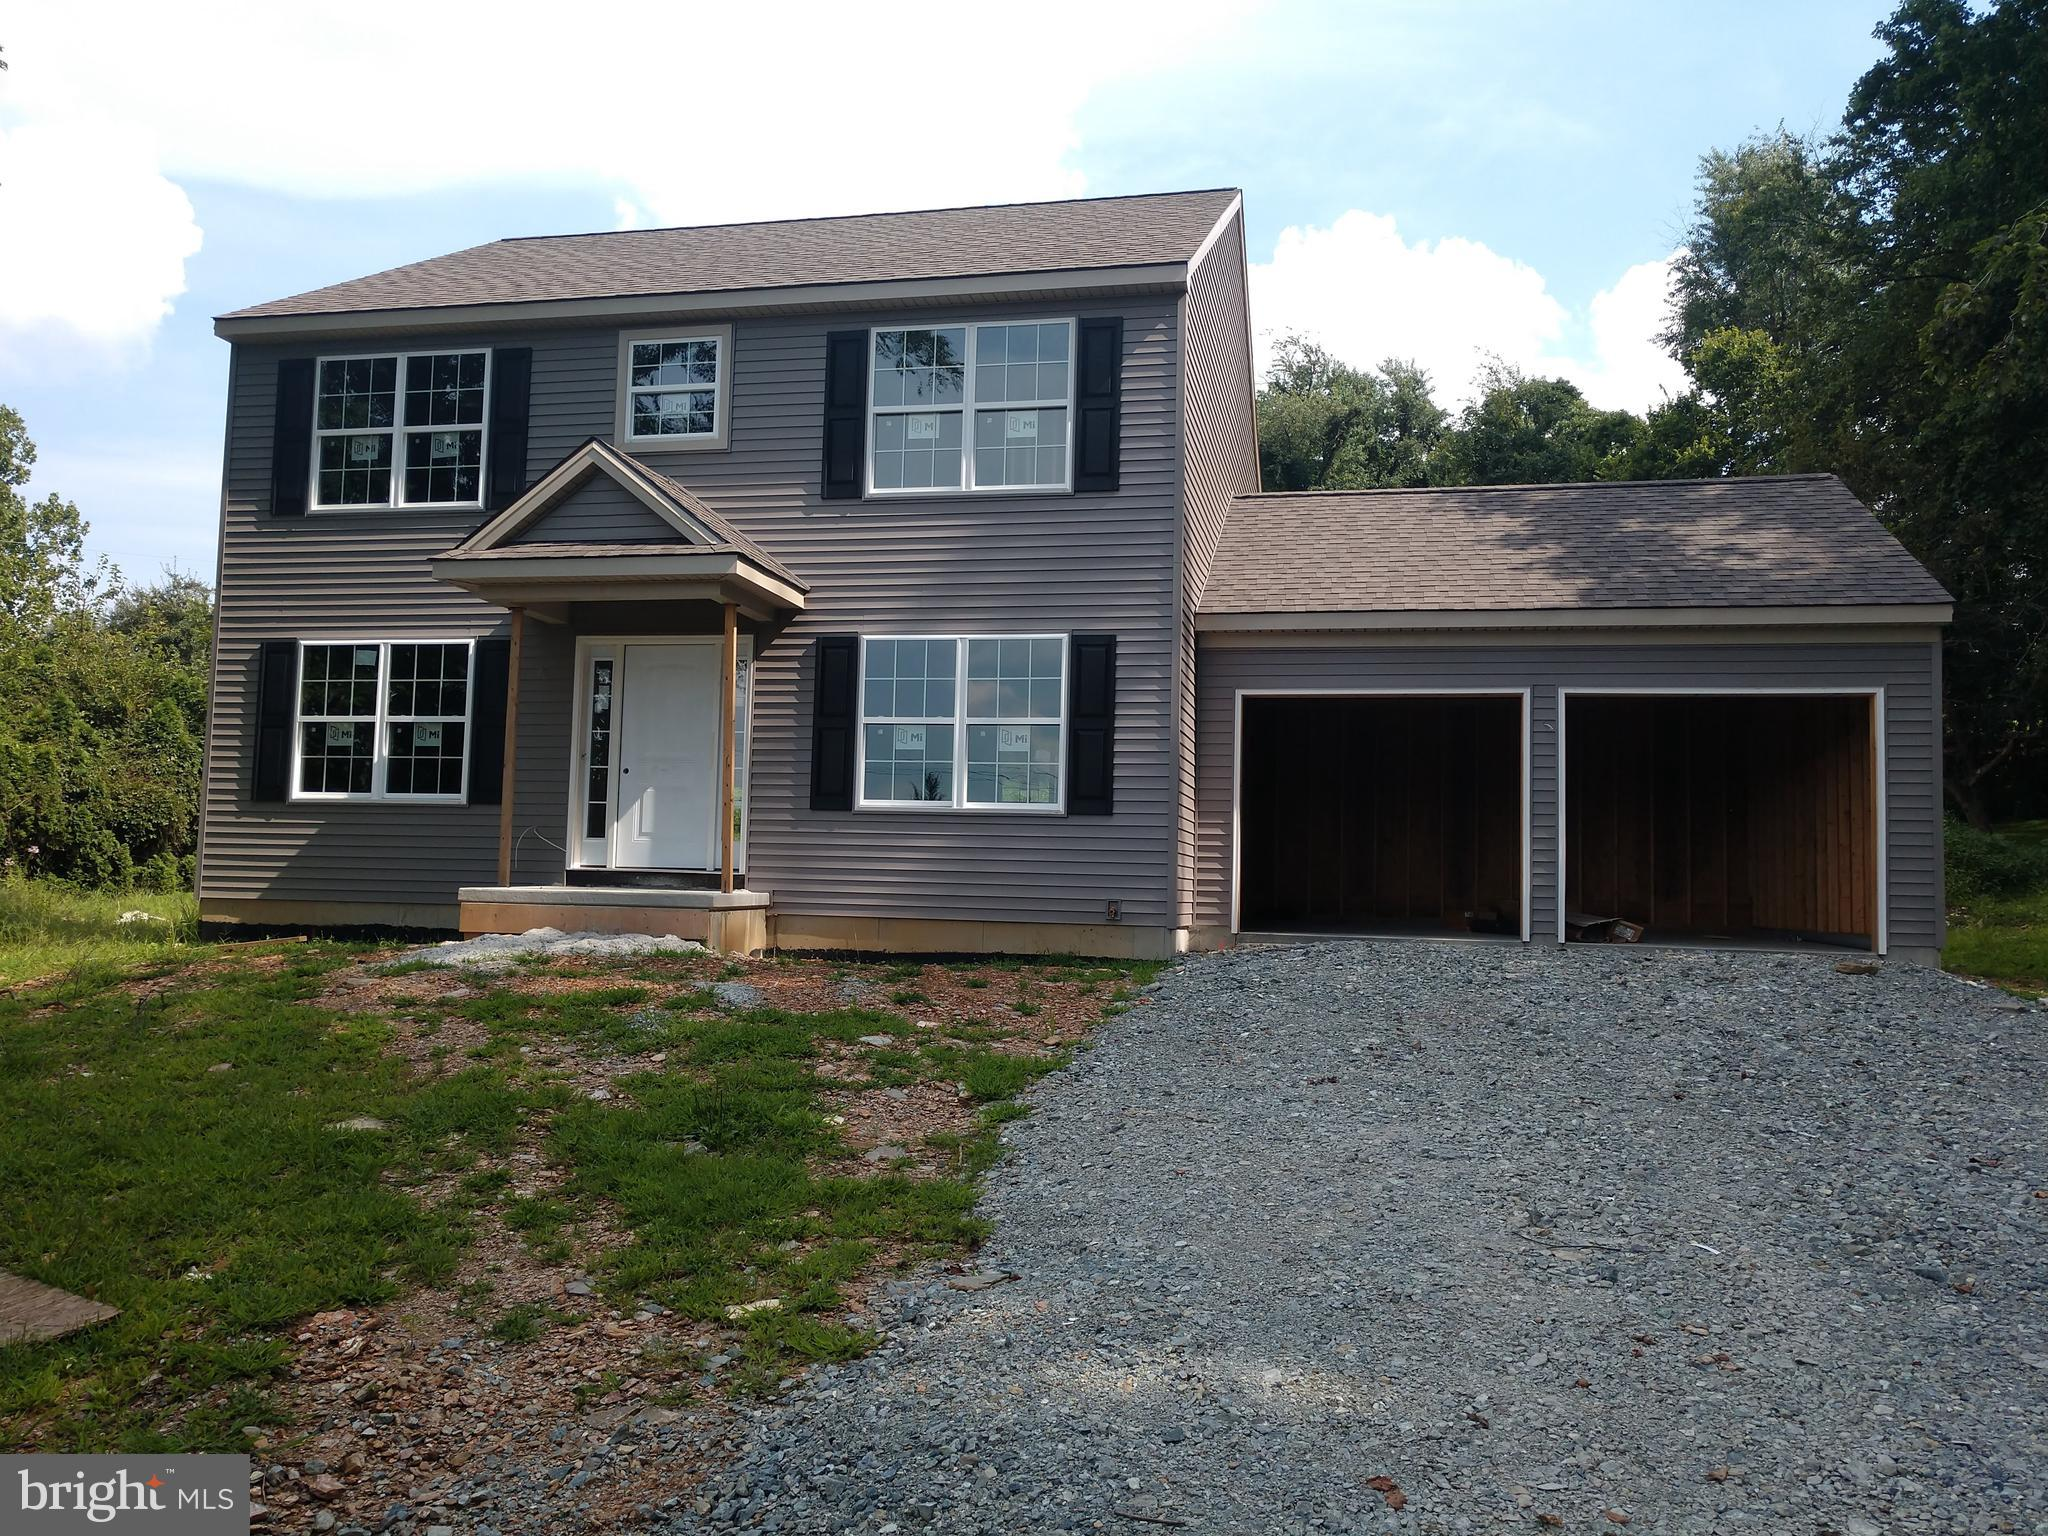 114 HOUSE ROCK ROAD, PEQUEA, PA 17565